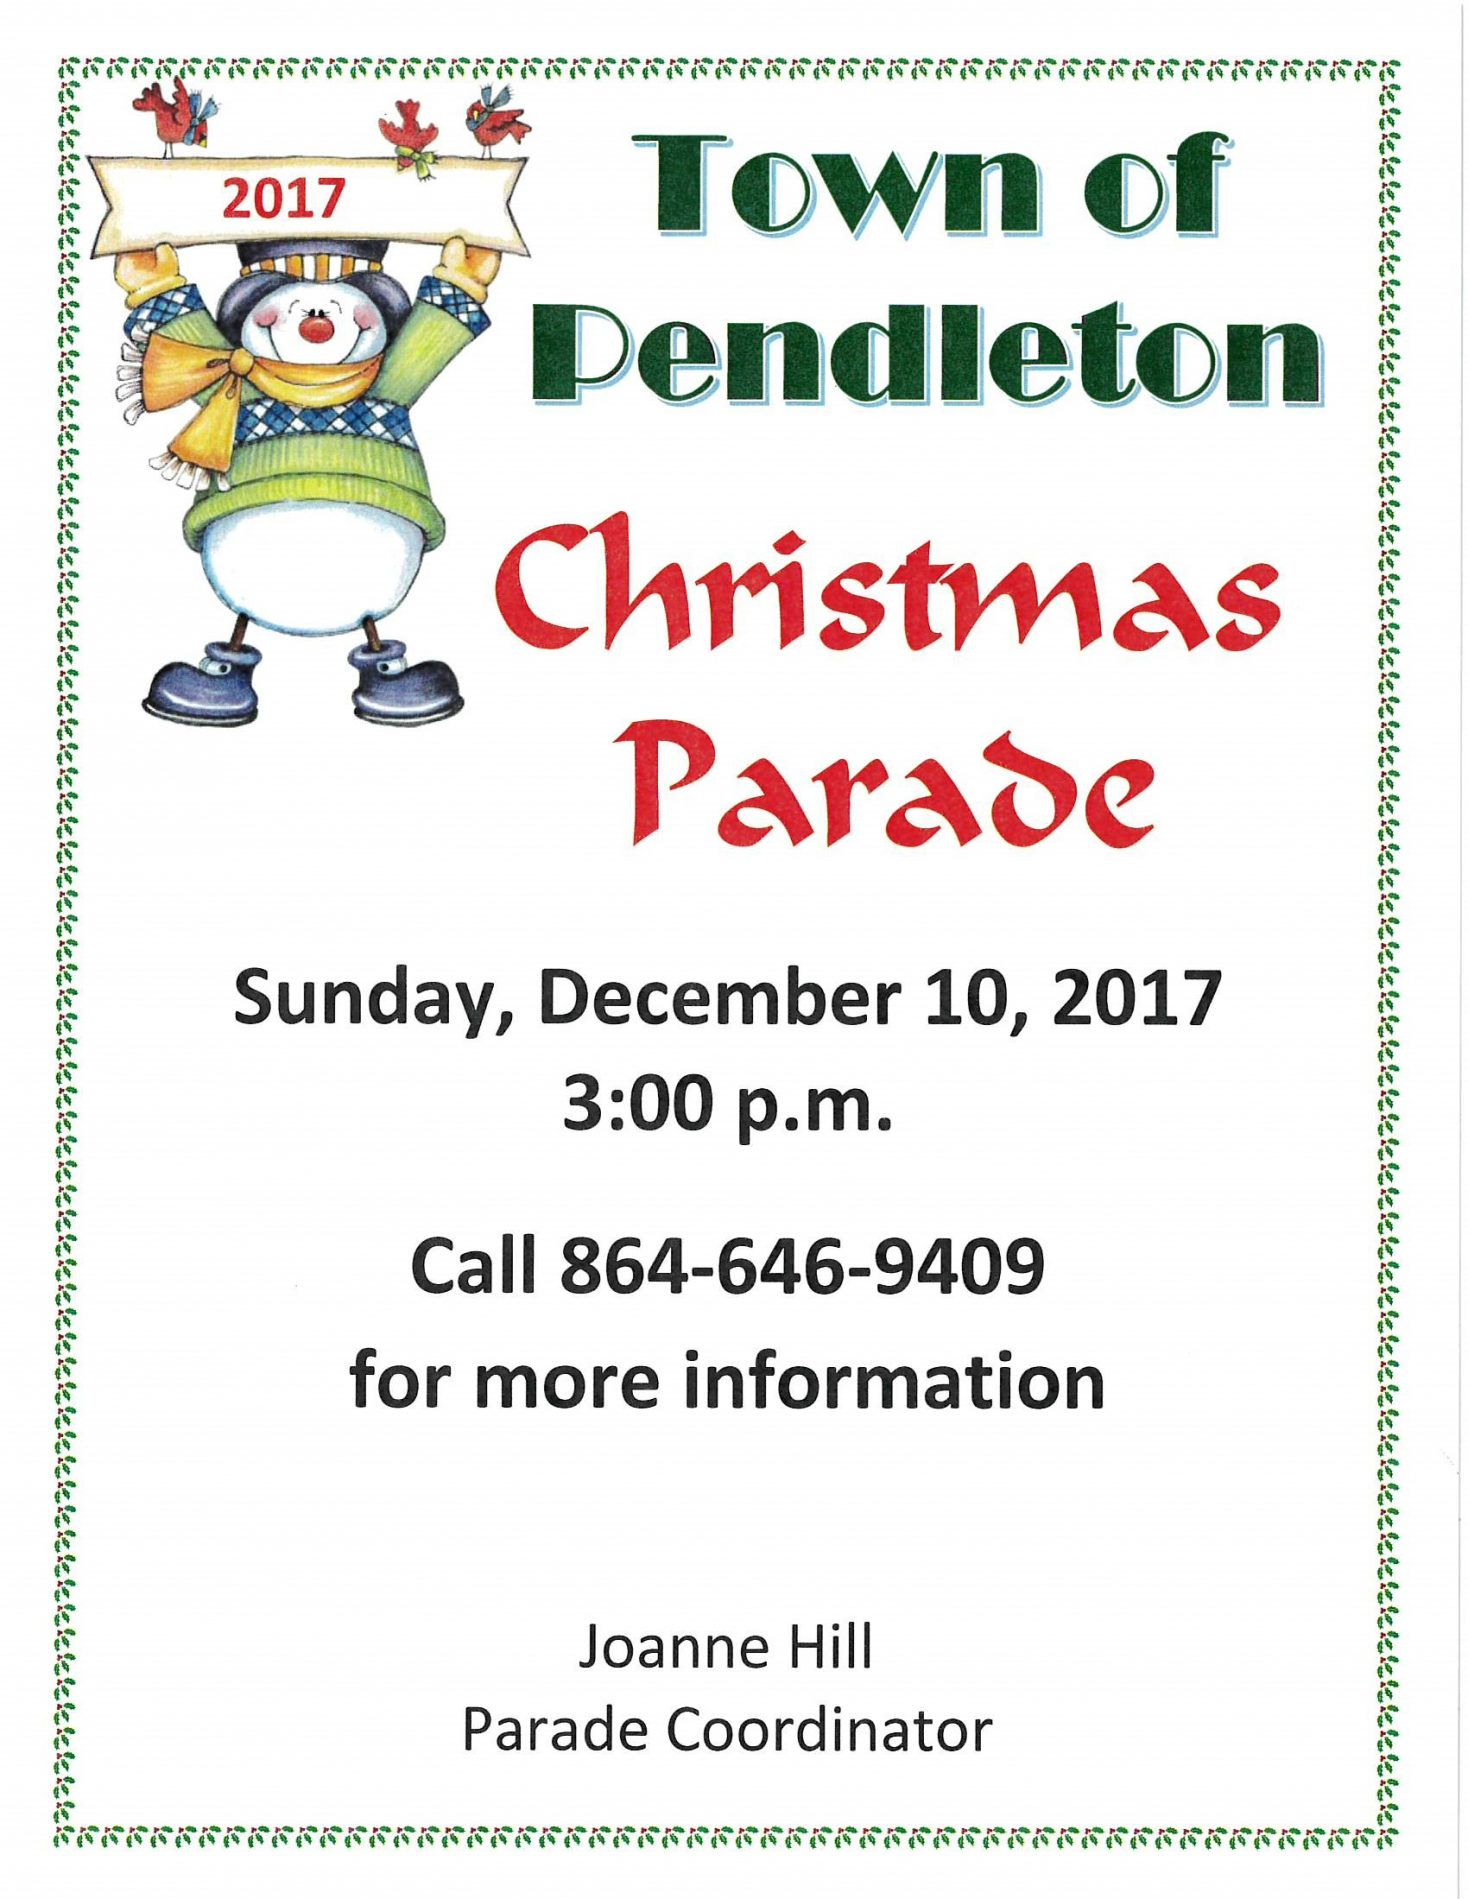 2017 Pendleton Christmas Parade Flyer & Entry Form